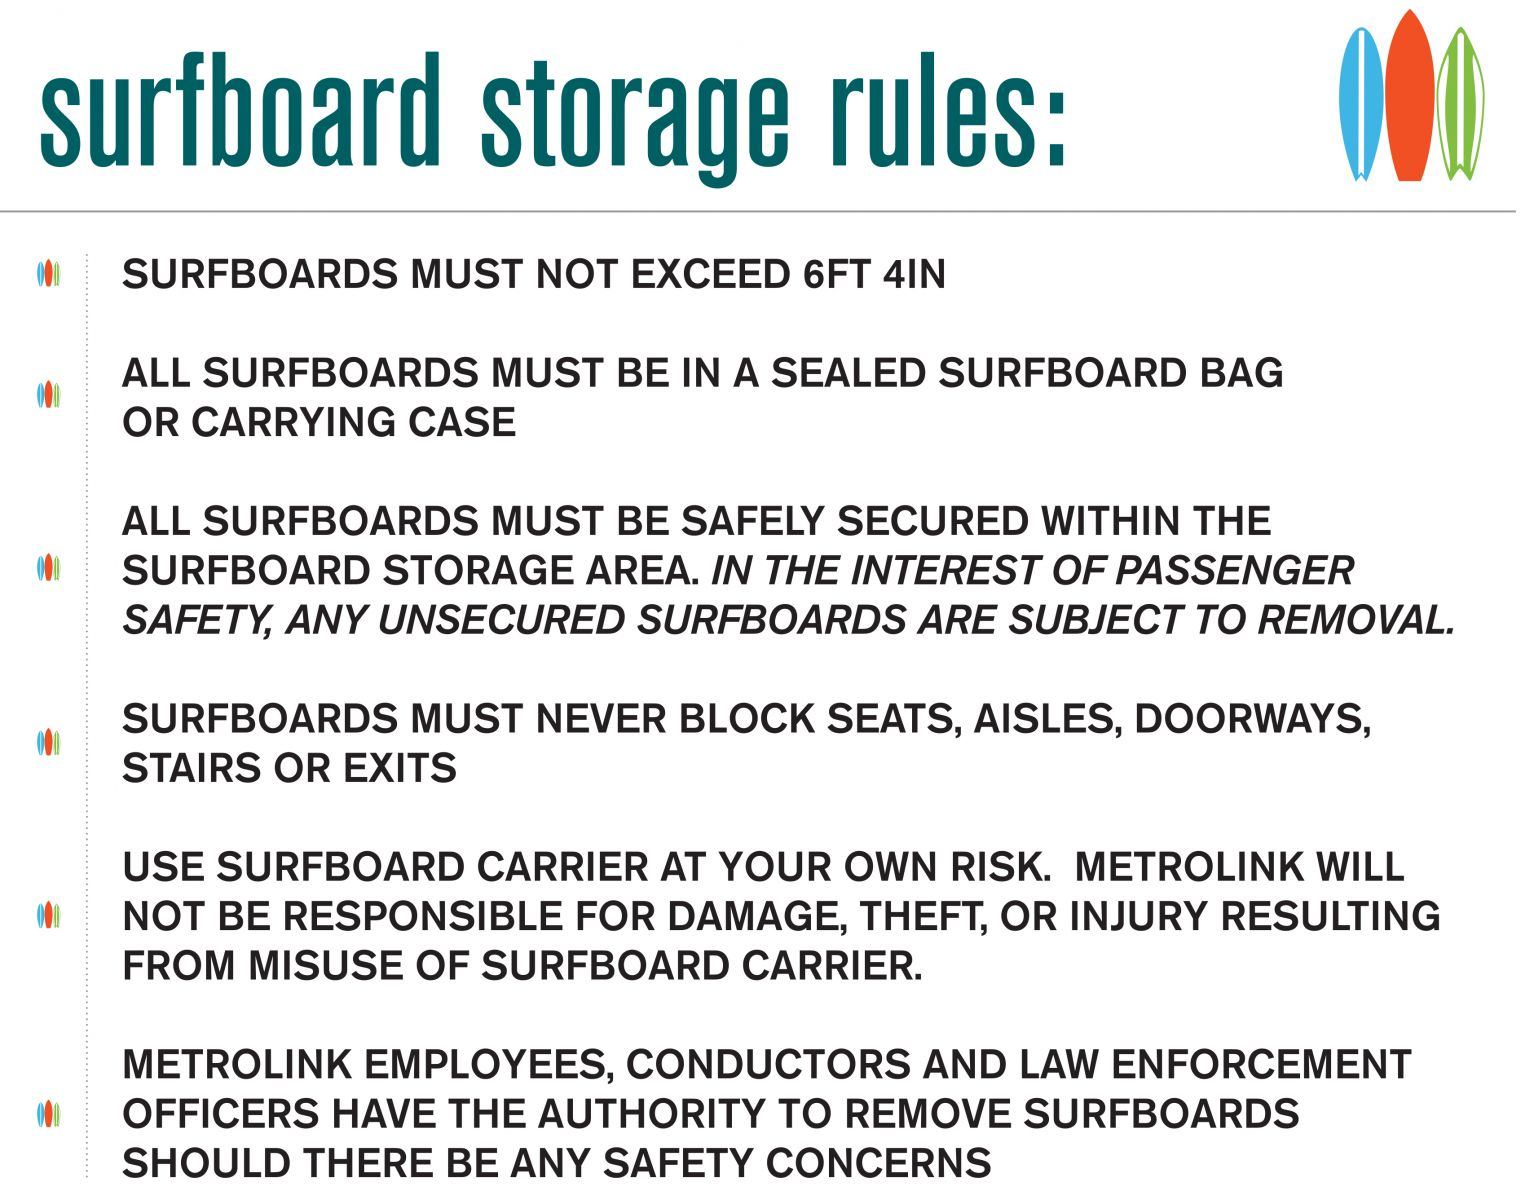 Surfboard Storage Rules